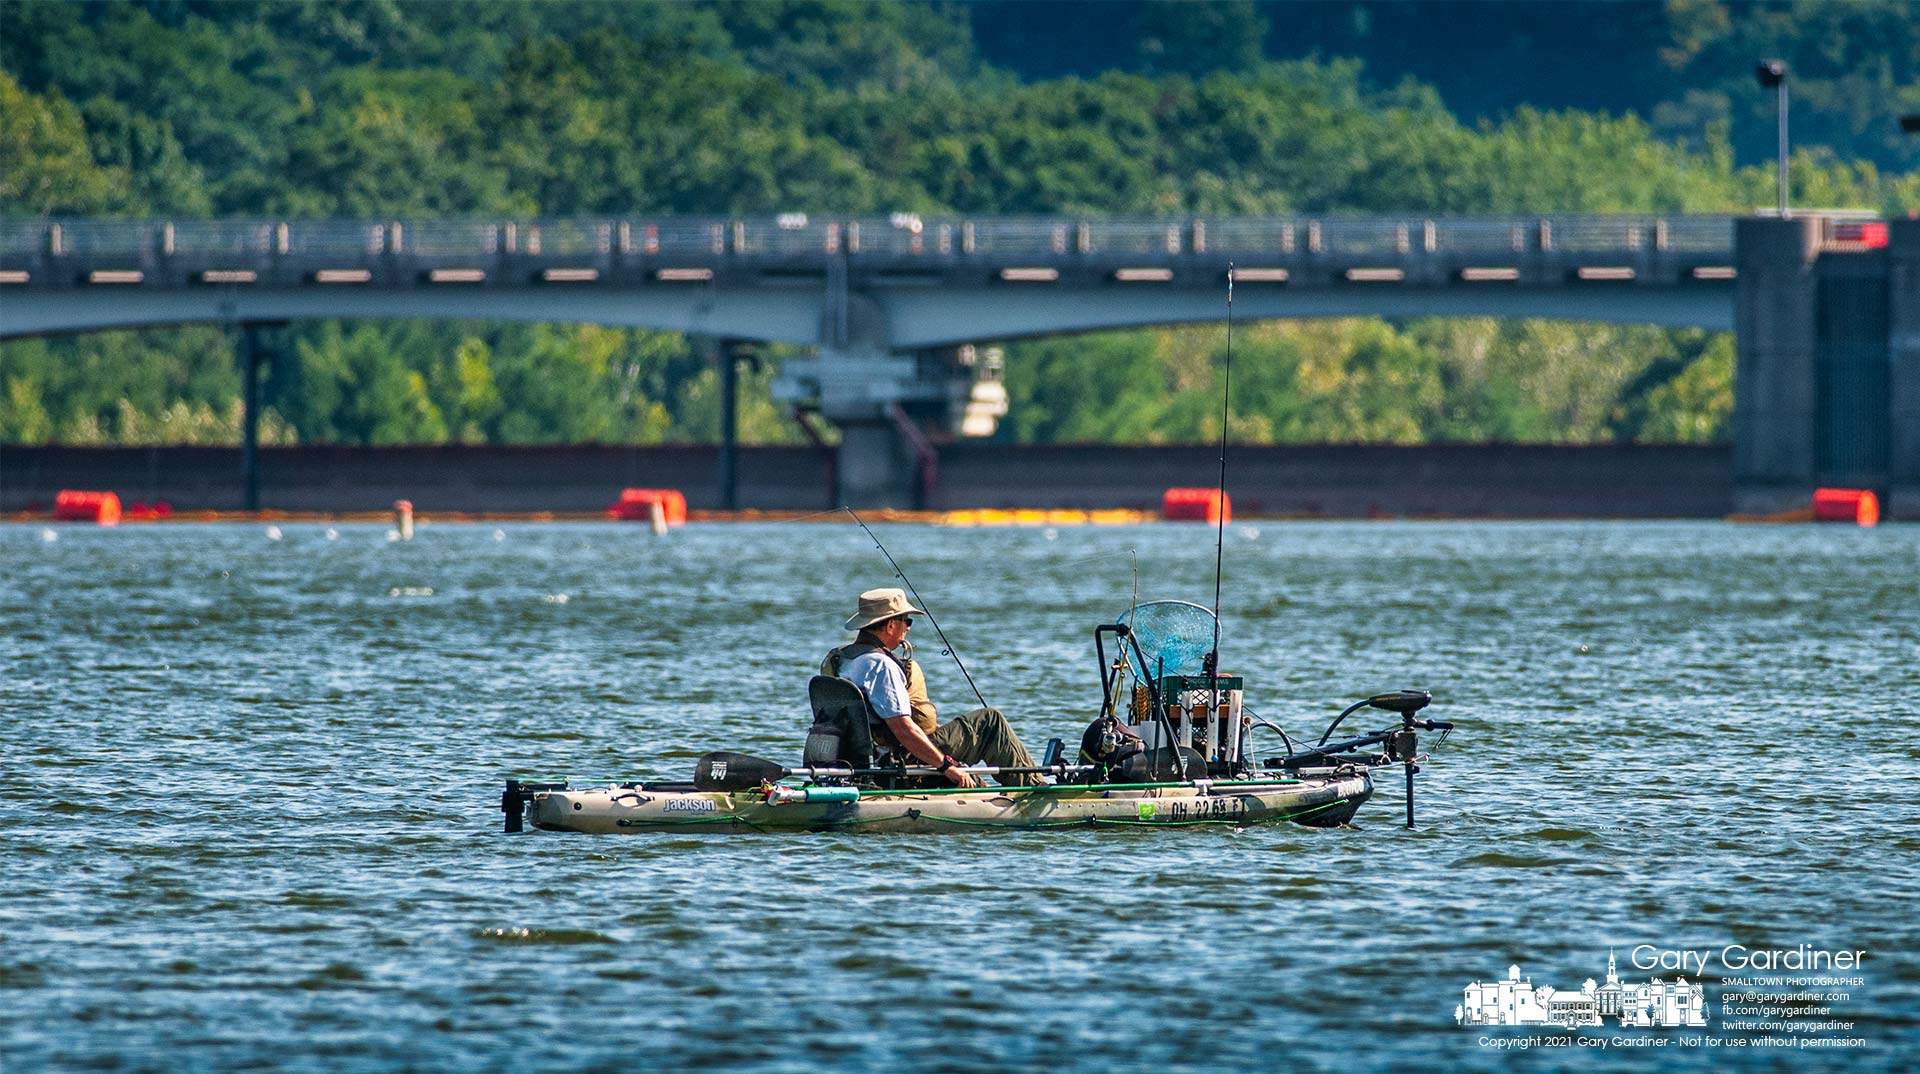 A fisherman shifts his position just above the dam at Hoover Reservoir during a Tuesday afternoon session on the lake. My Final Photo for Sept. 7, 2021.